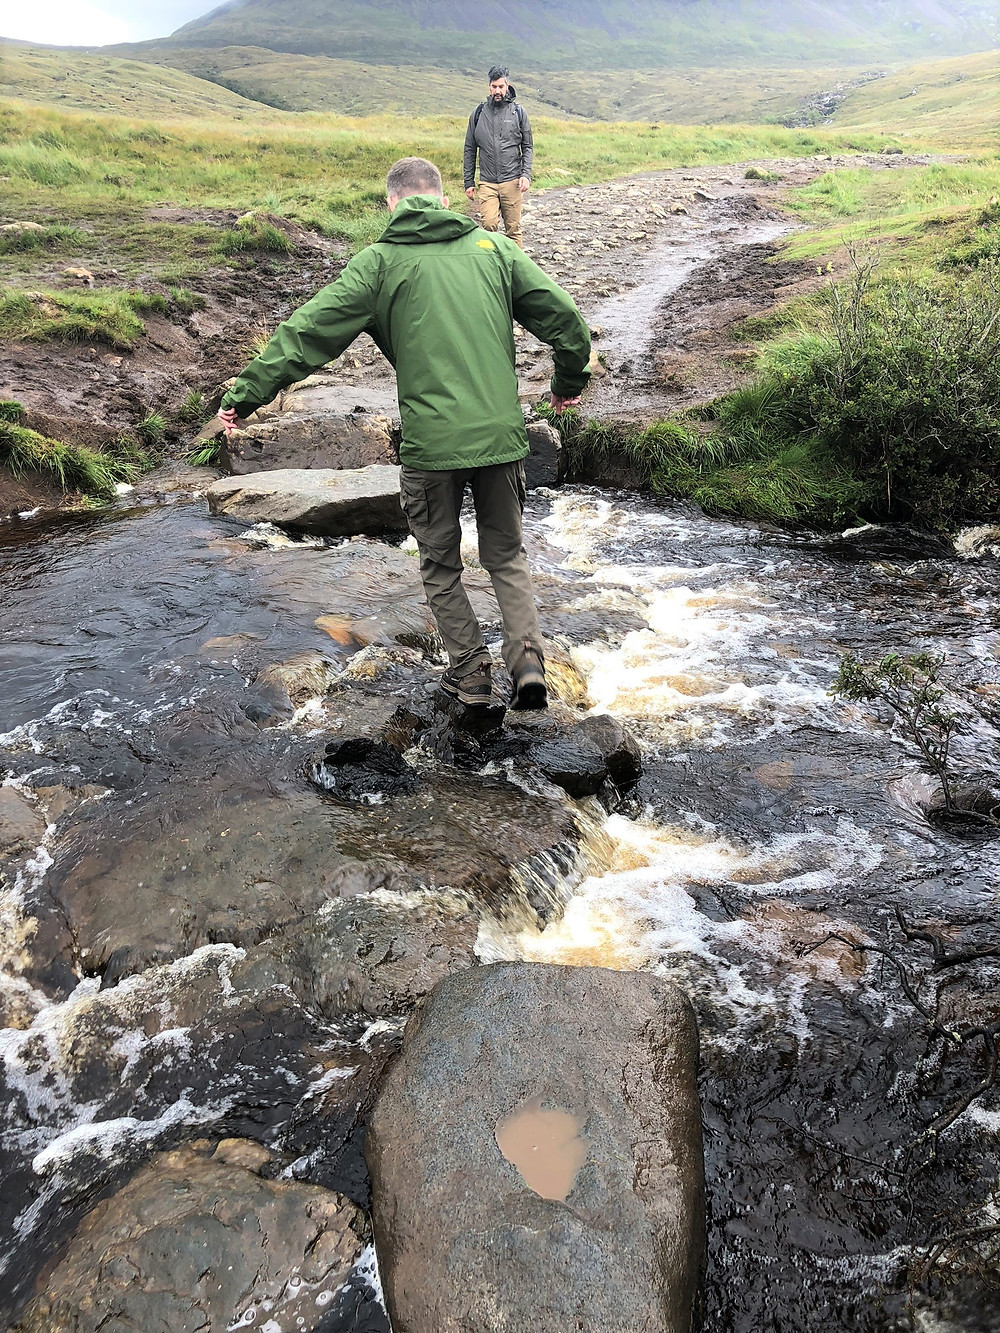 Crossing the stream at Fairy Pools on the Isle of Skye